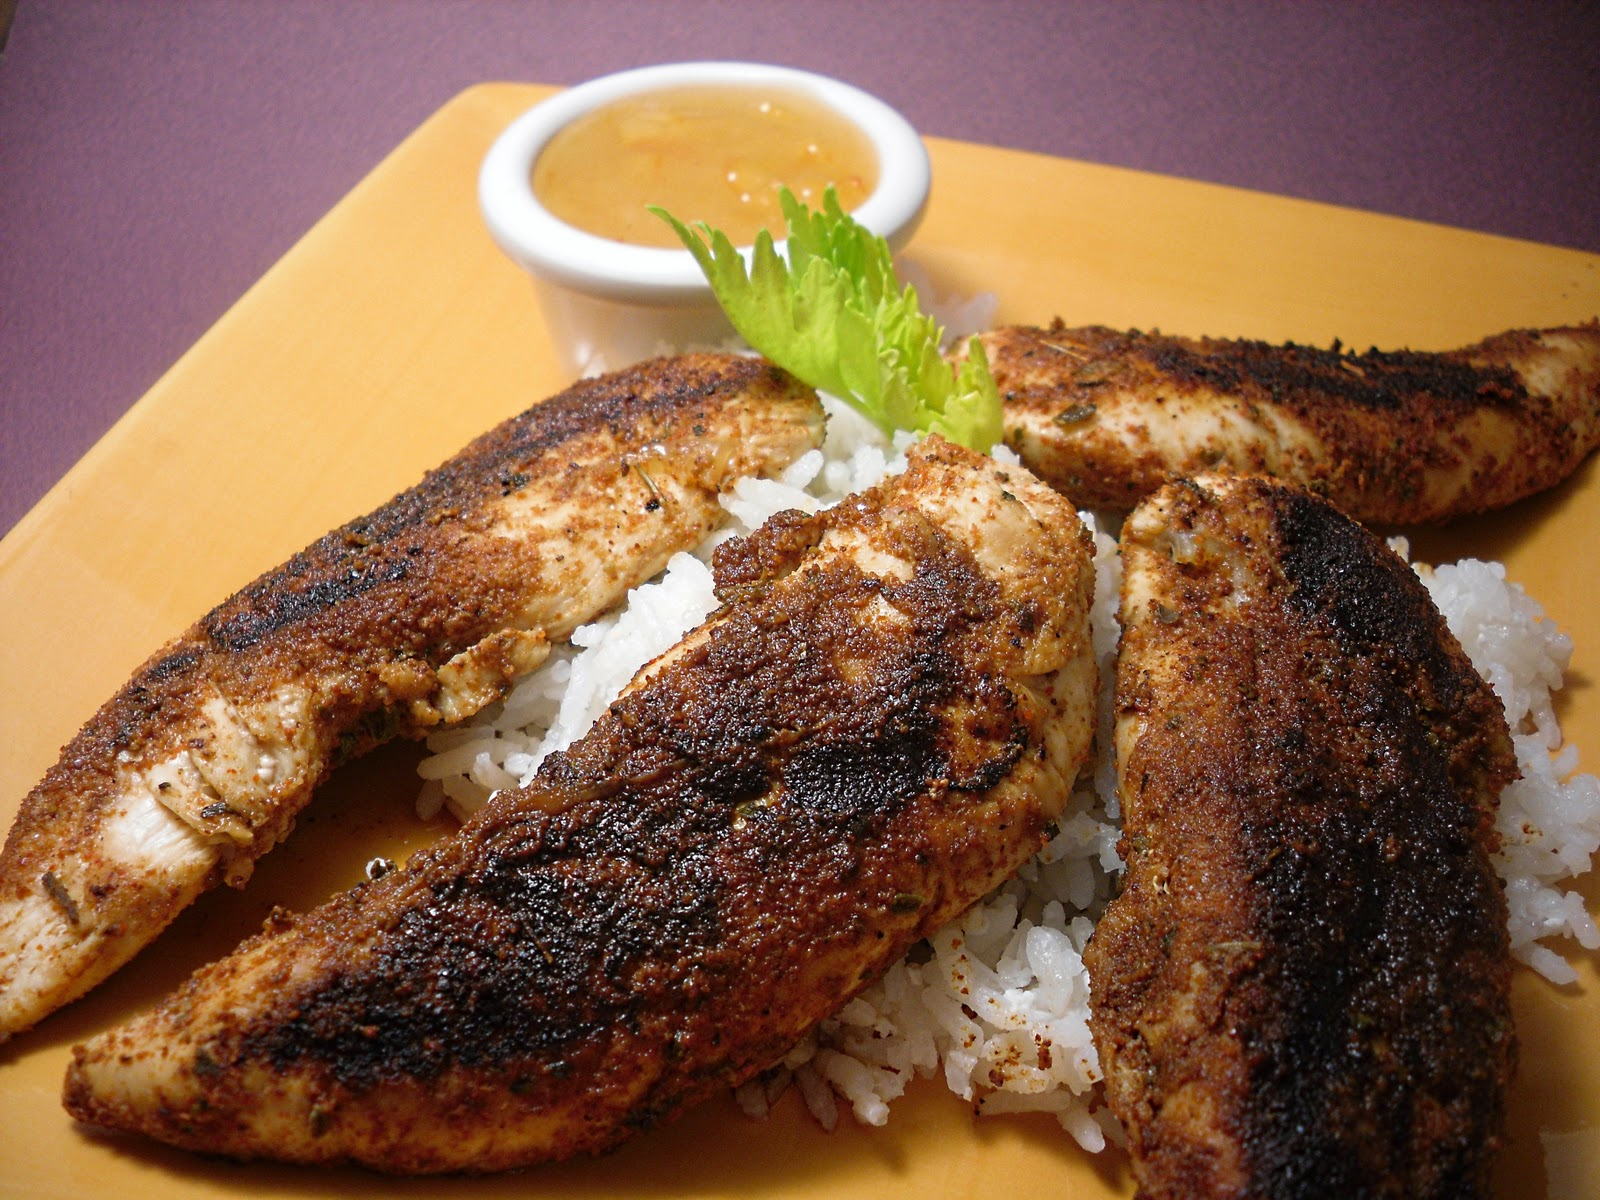 Blackened Chicken Tenders with Orange Marmalade Dipping Sauce